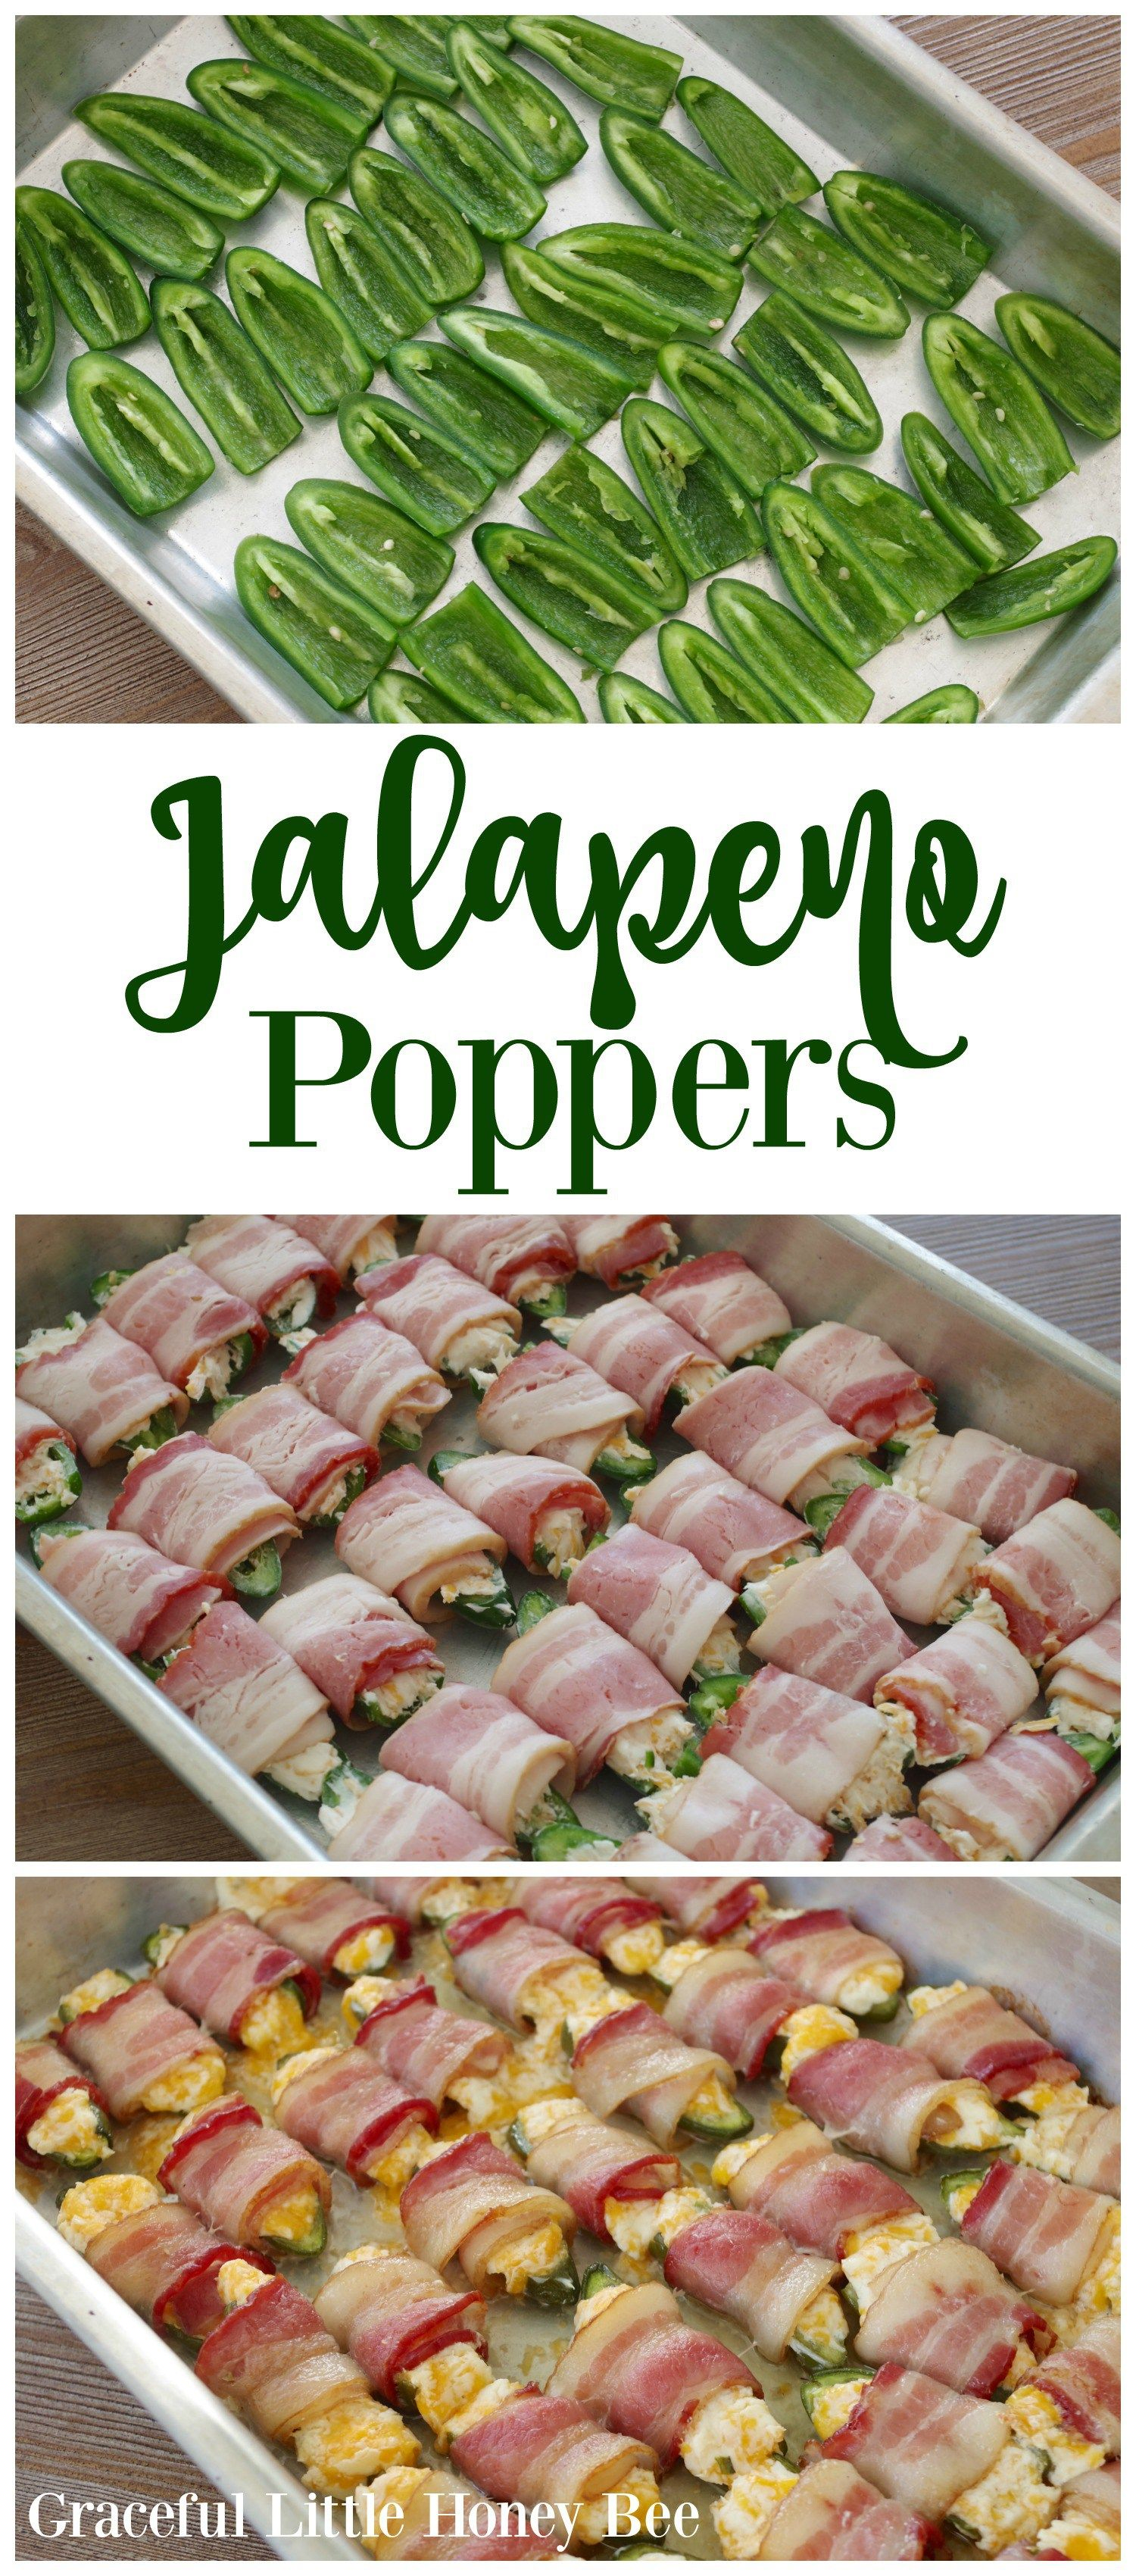 Cheesy Bacon Jalapeno Poppers - Graceful Little Honey Bee